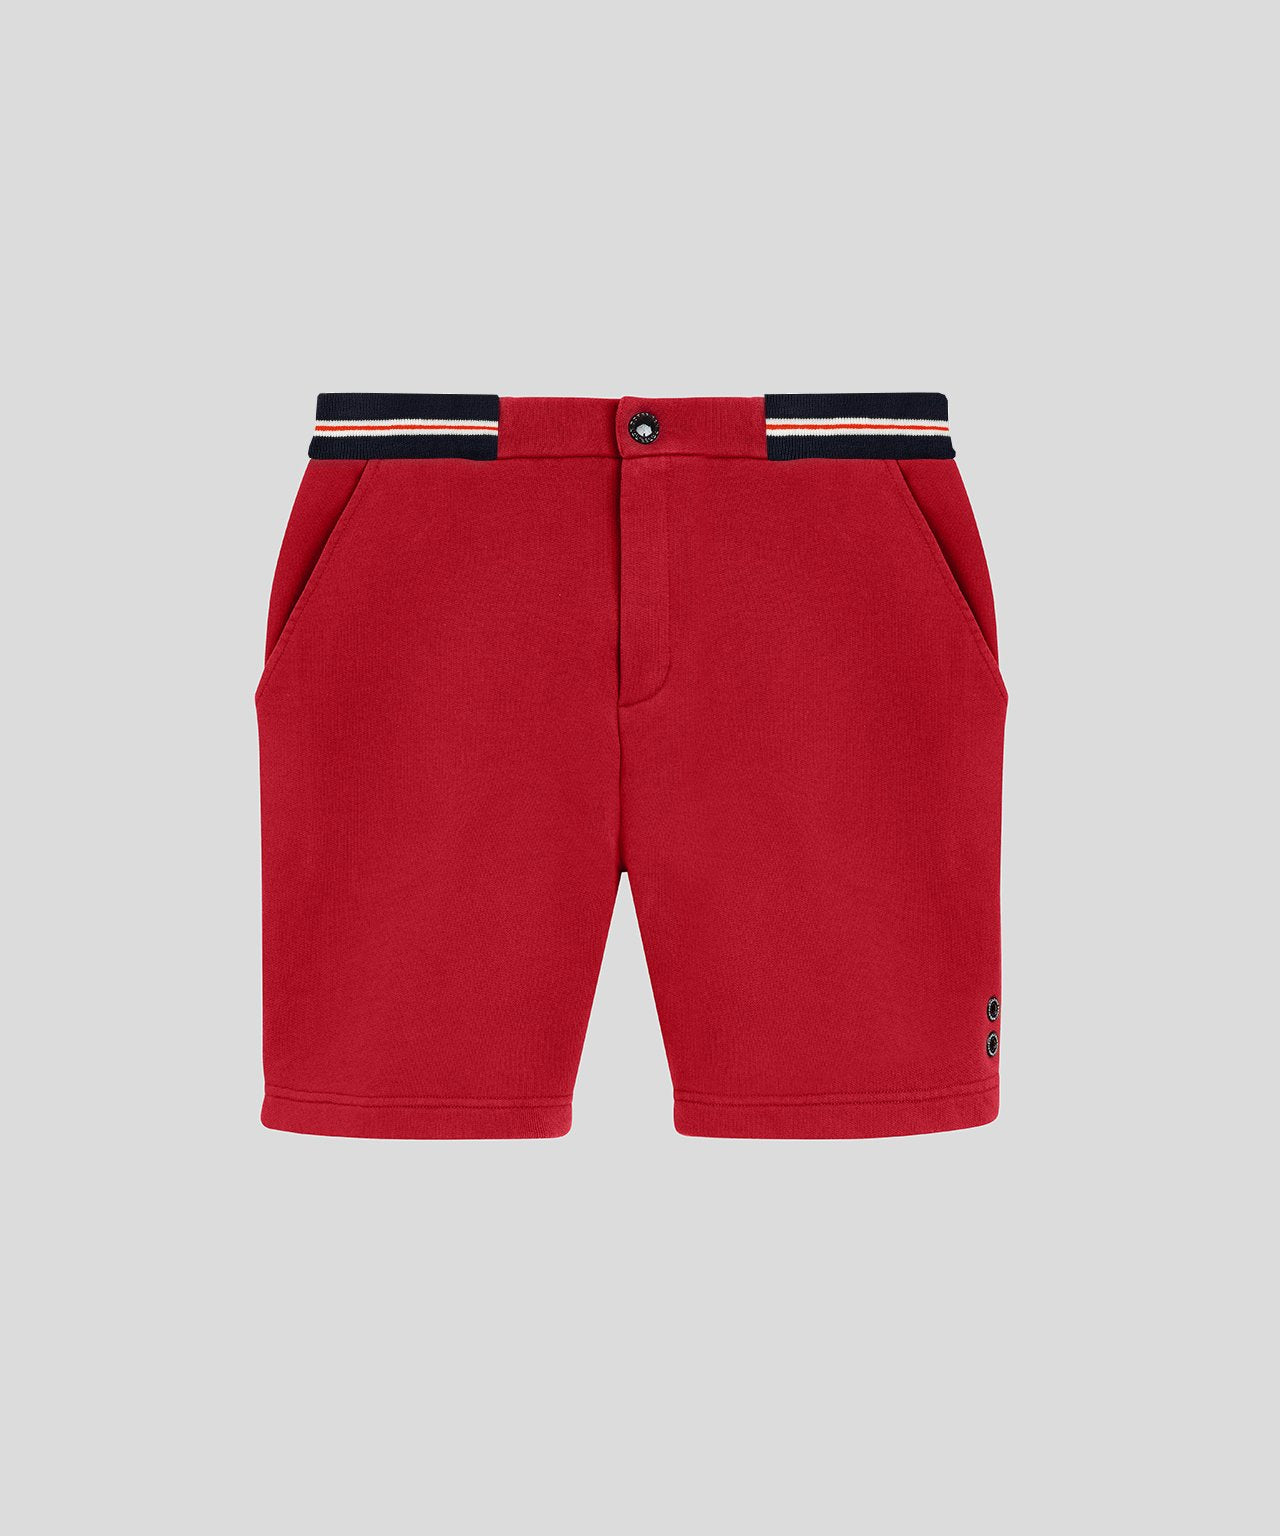 Urban Shorts Waist Stripes - traffic red